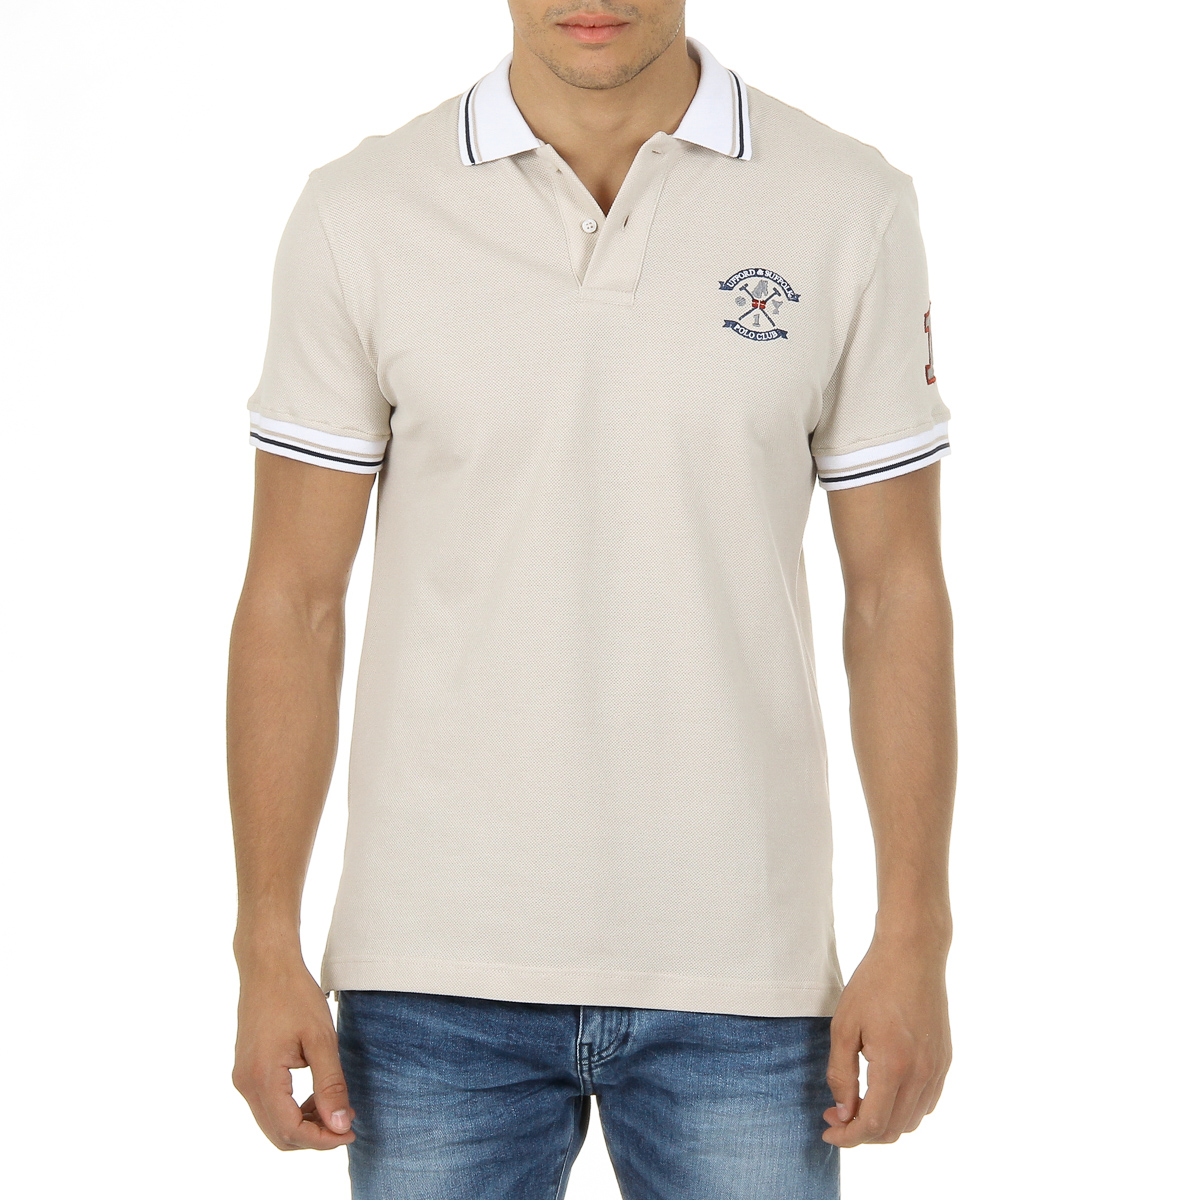 Primary image for Ufford & Suffolk Polo Club Mens Polo Short Sleeves Beige FURIA